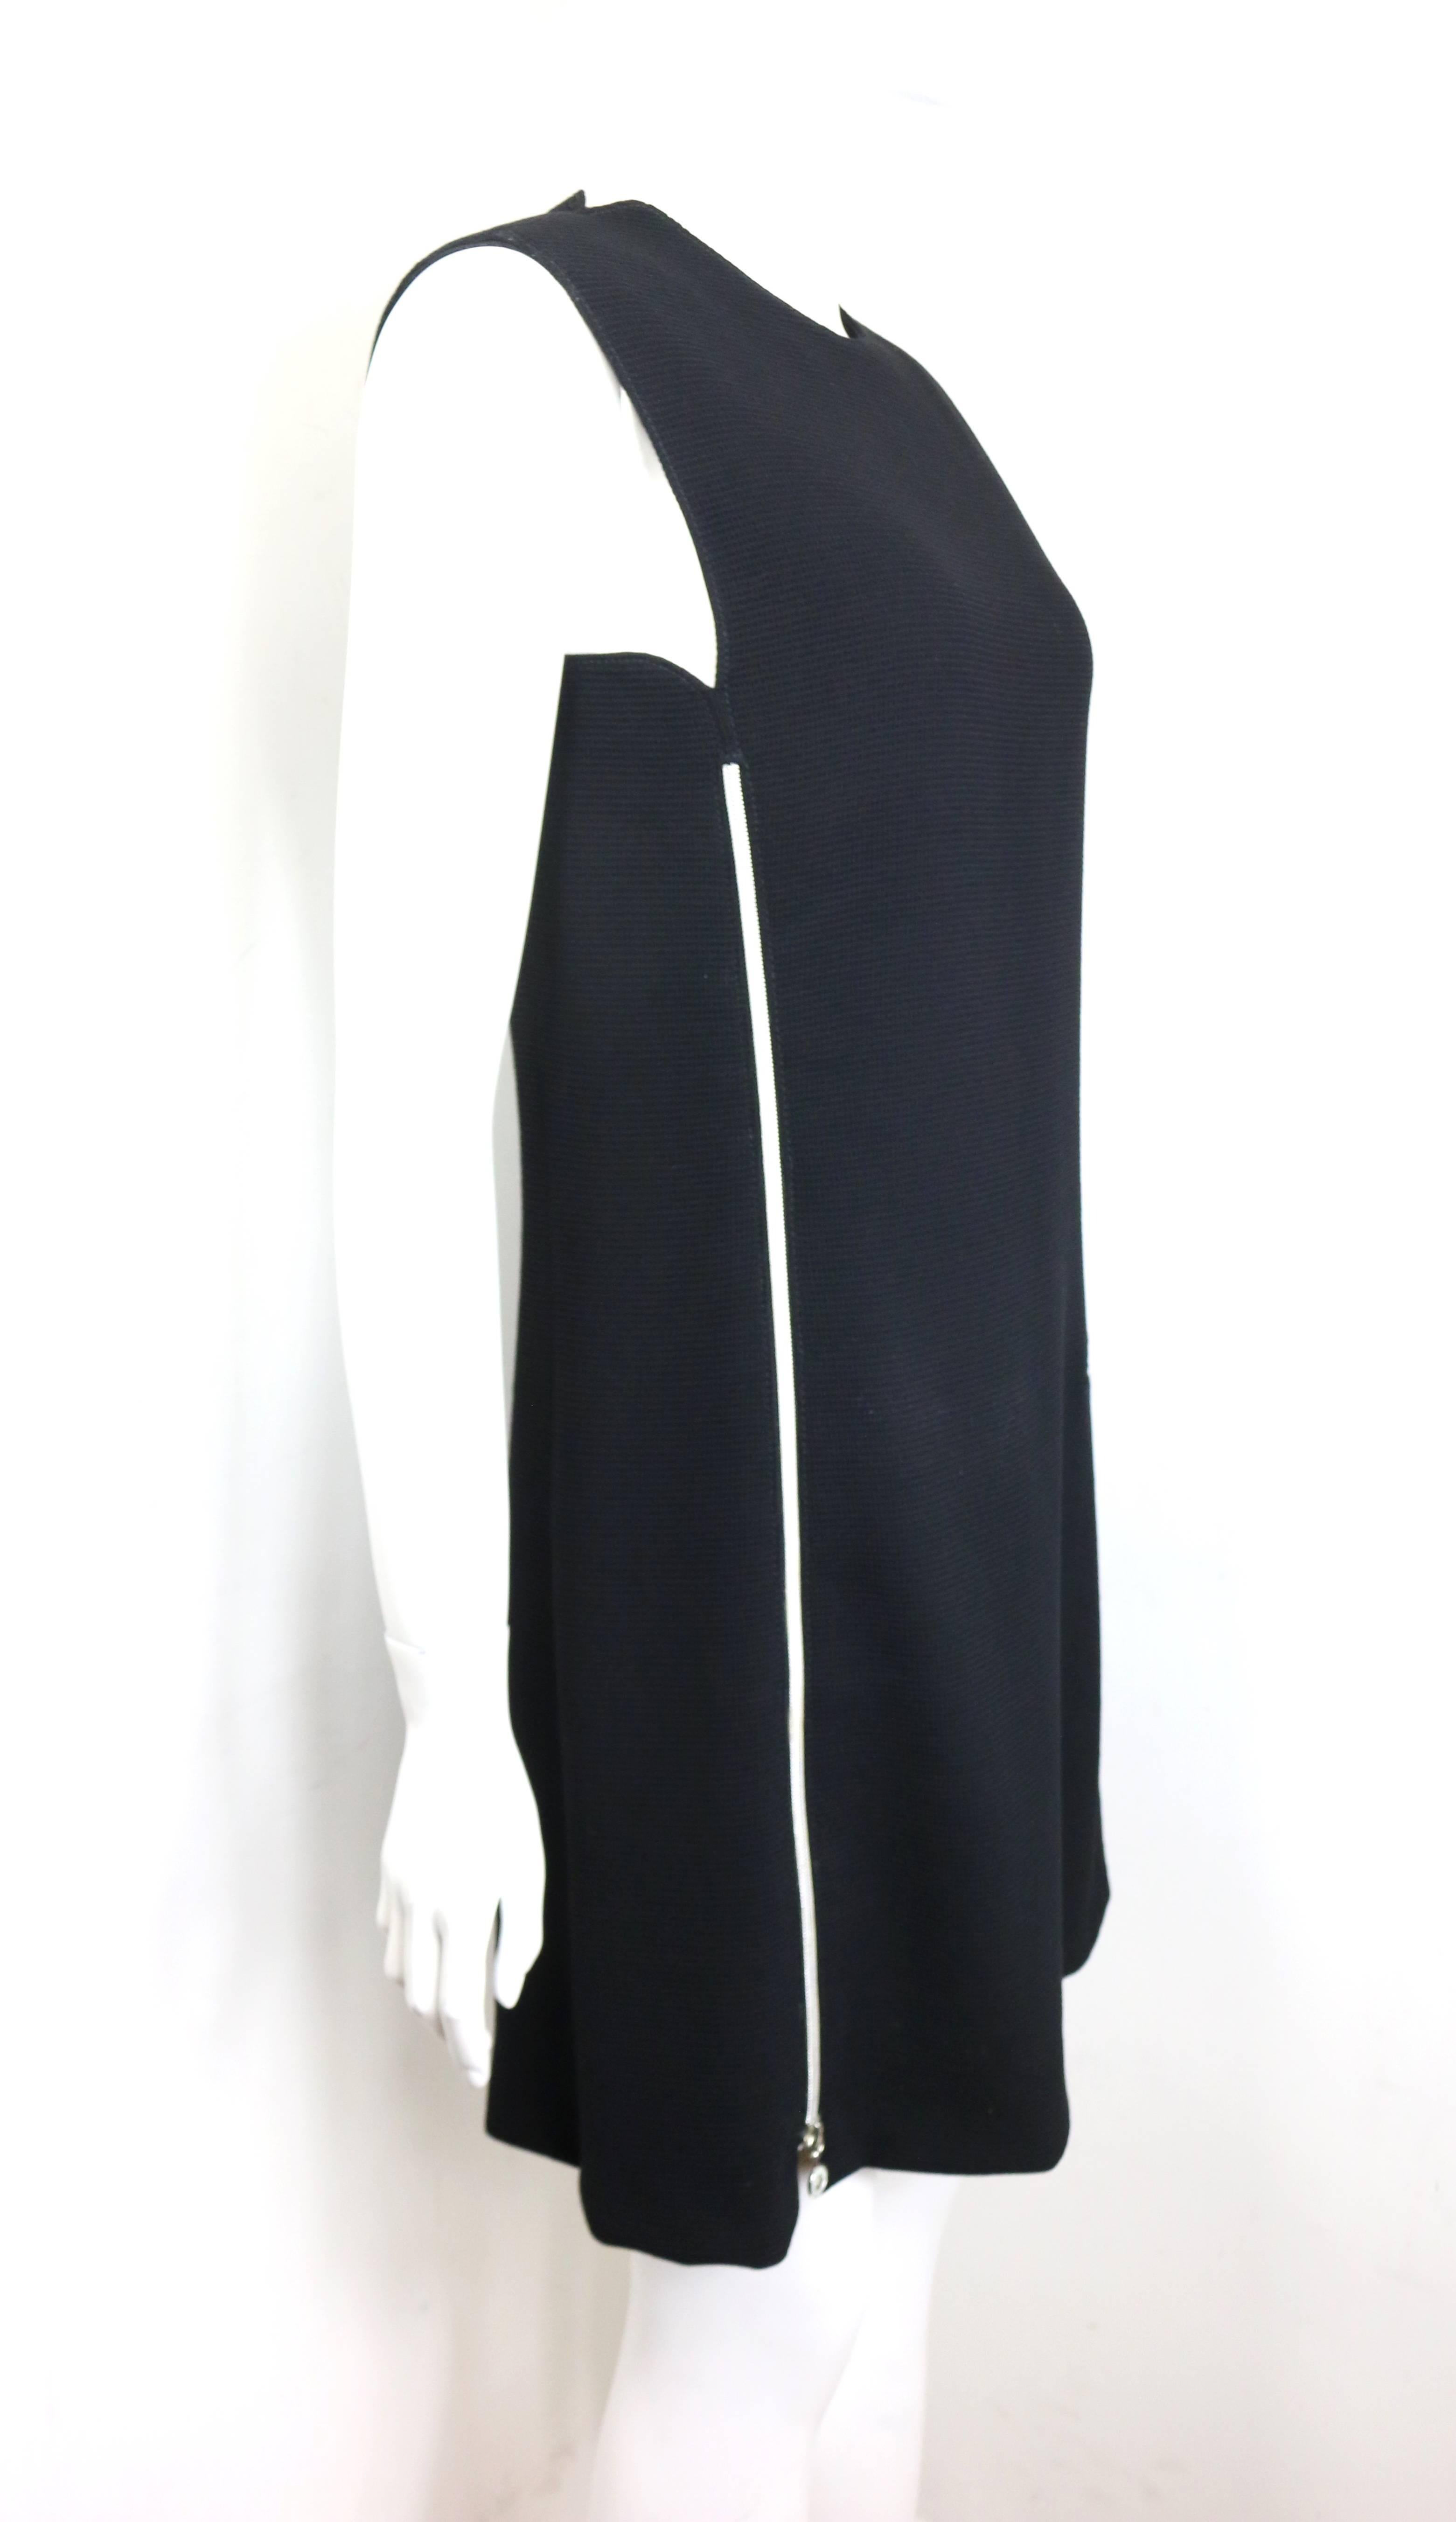 c5cf08bee4e Gianni Versace Couture Black Dress With Medusa Zippers For Sale at 1stdibs